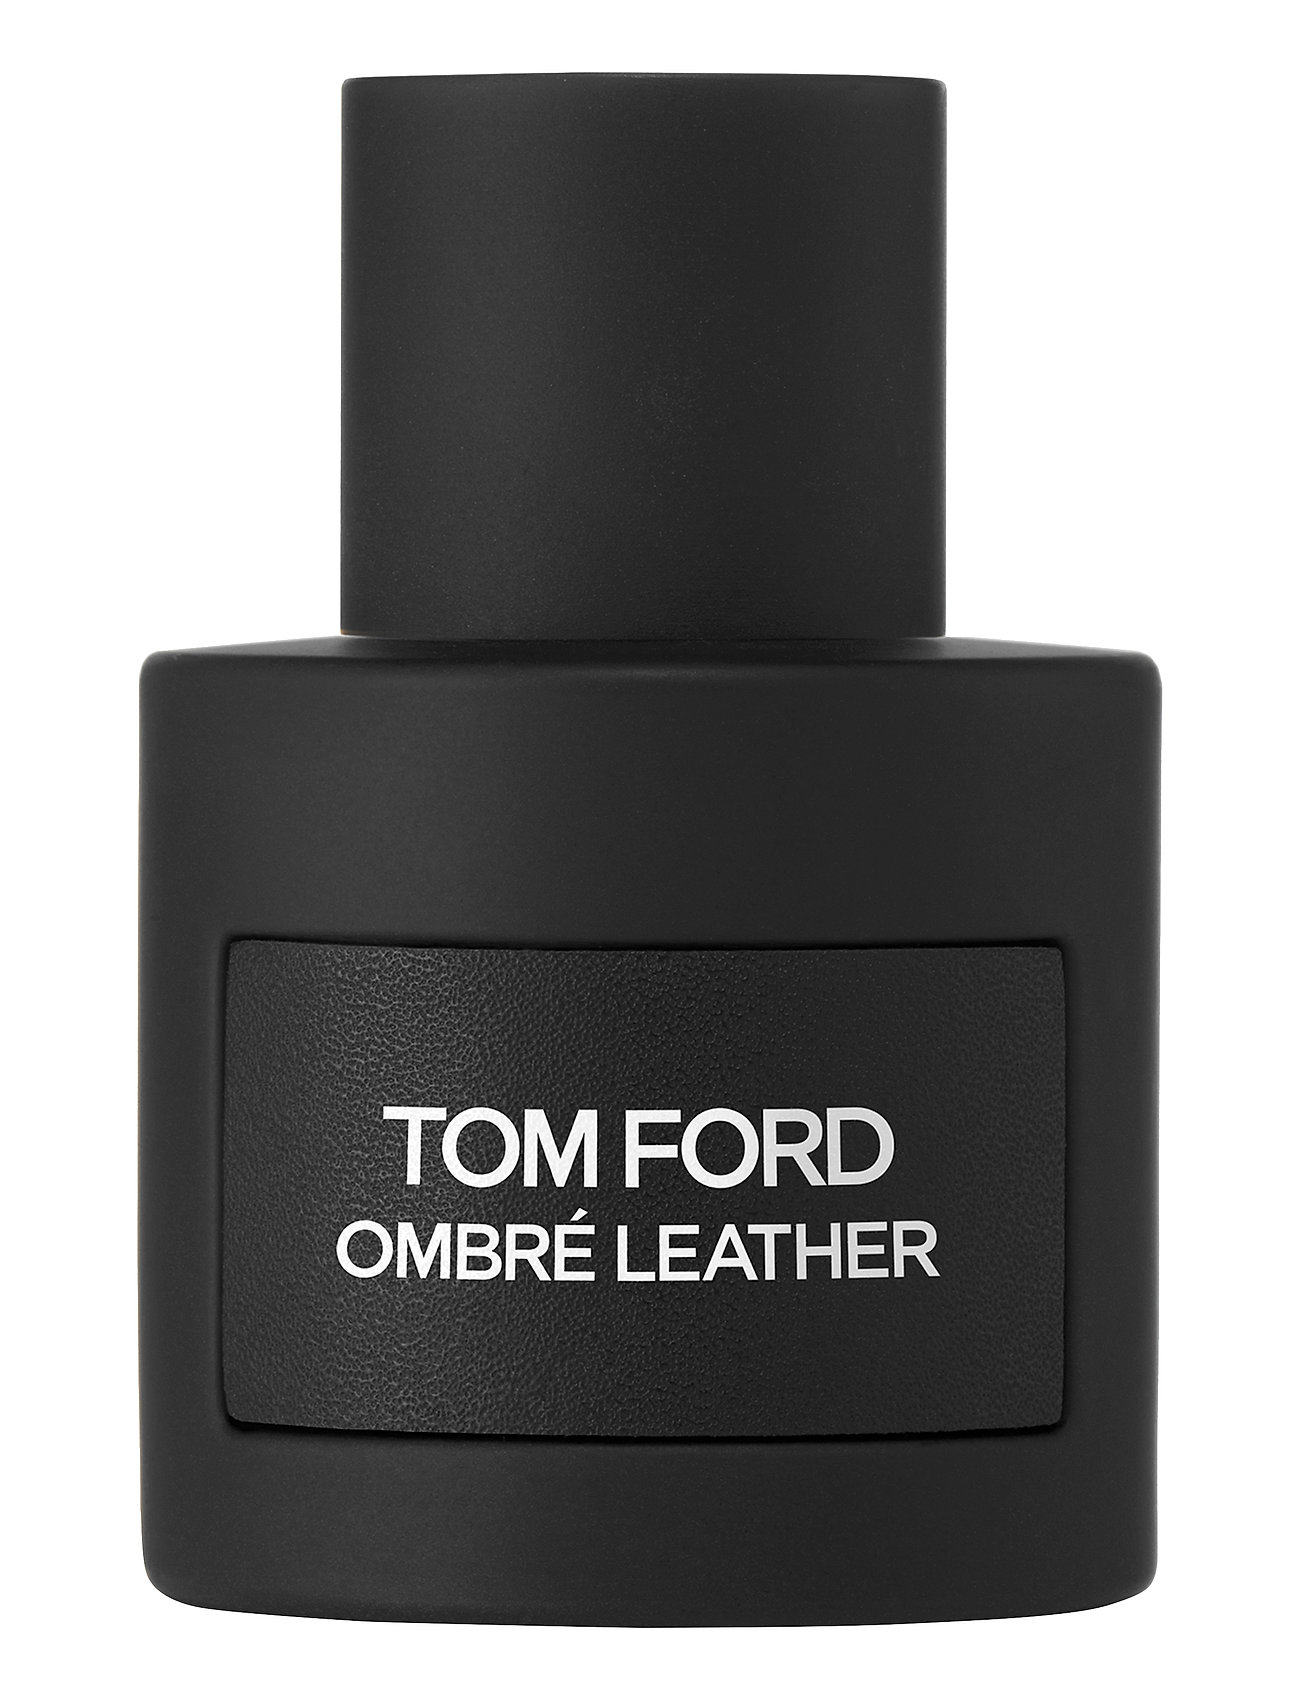 Tom Ford Ombré Leather 50ml - CLEAR